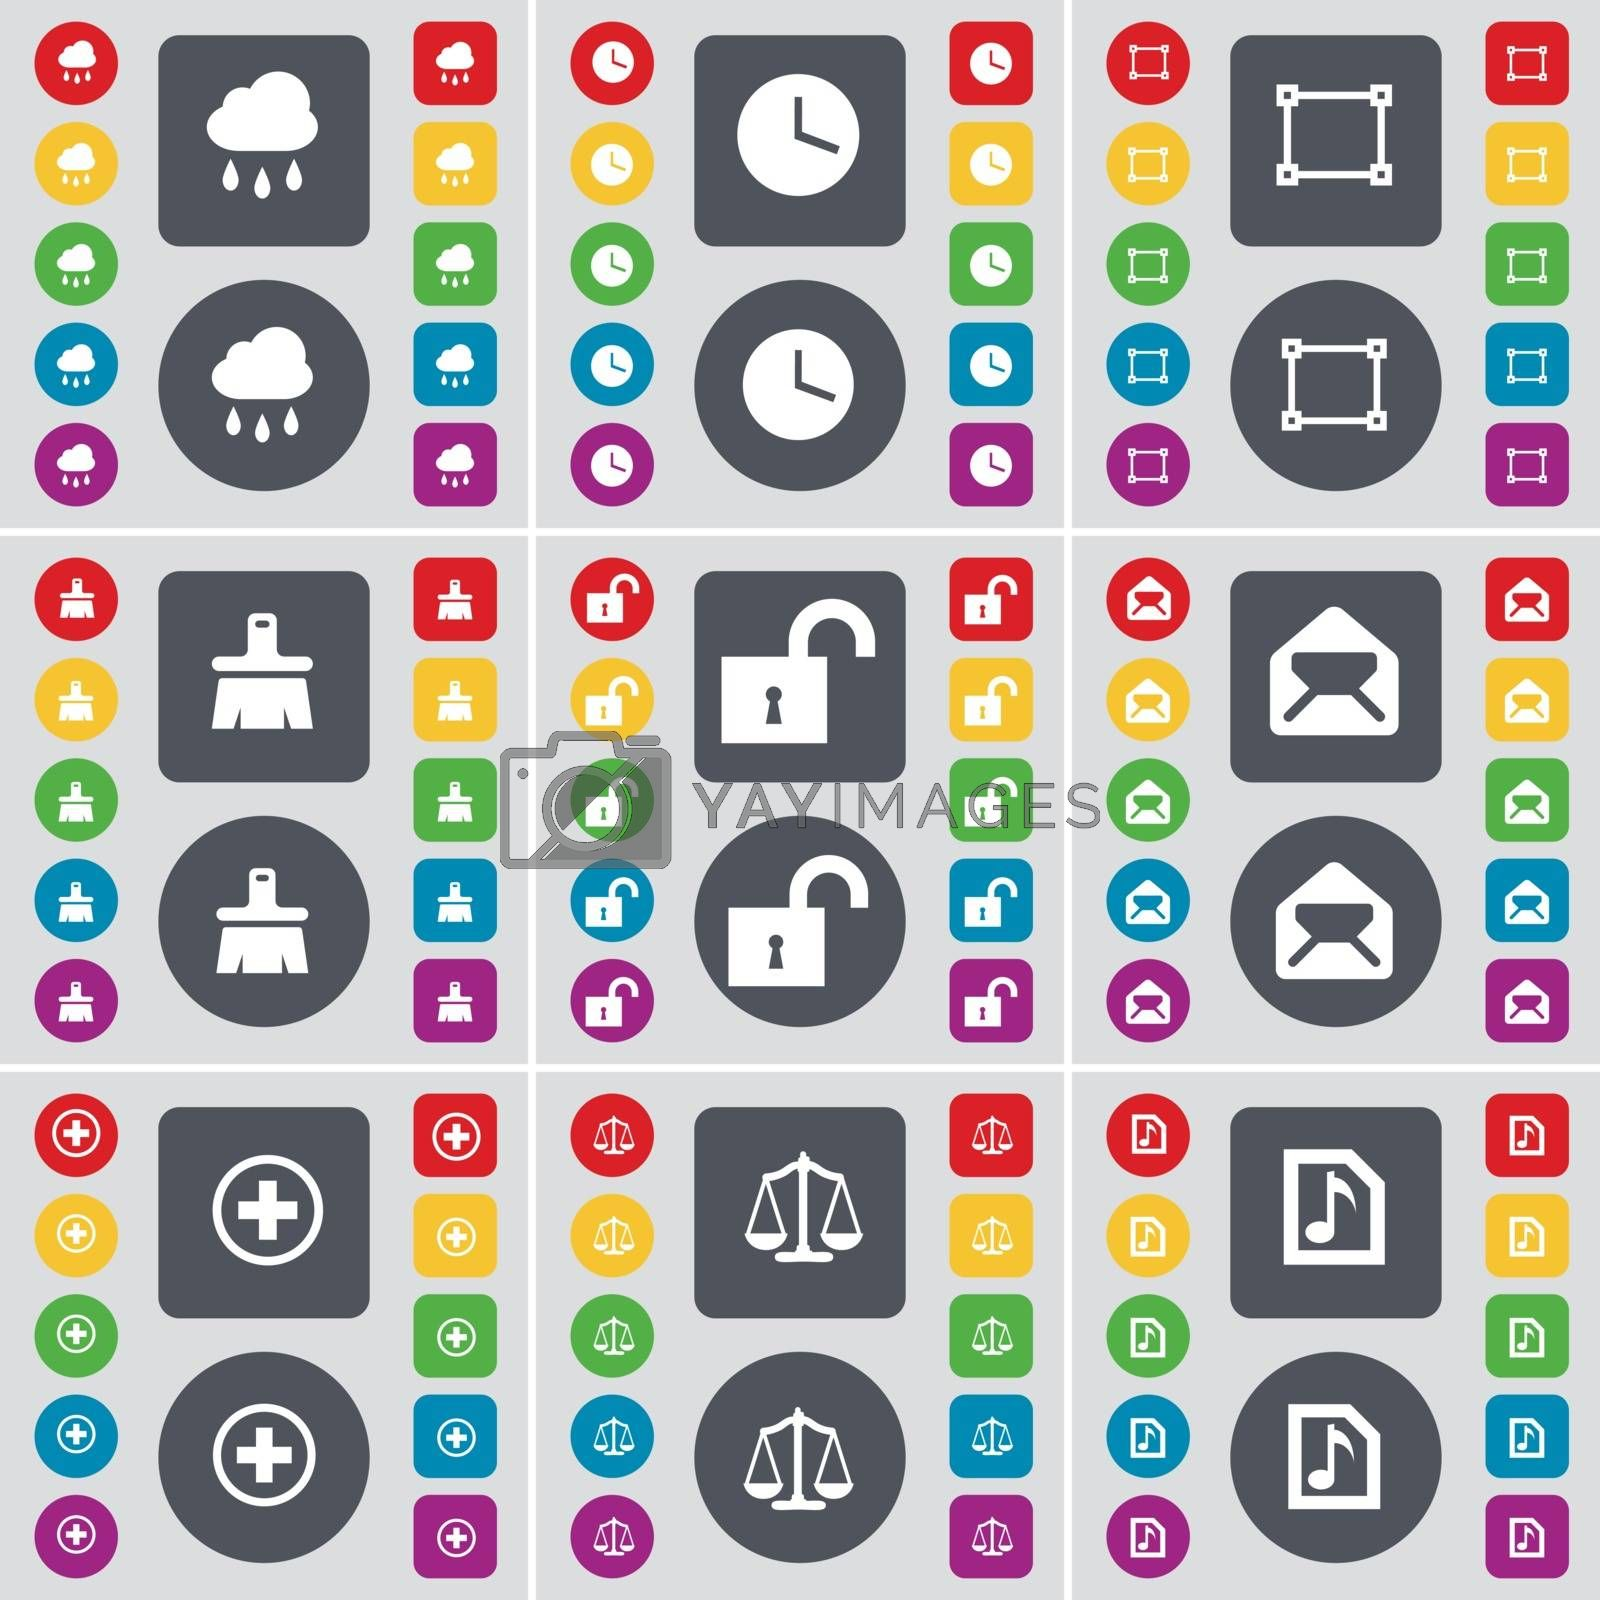 Royalty free image of Cloud, Clock, Frame, Brush, Lock, Message, Plus, Scales, Music file icon symbol. A large set of flat, colored buttons for your design. Vector by serhii_lohvyniuk